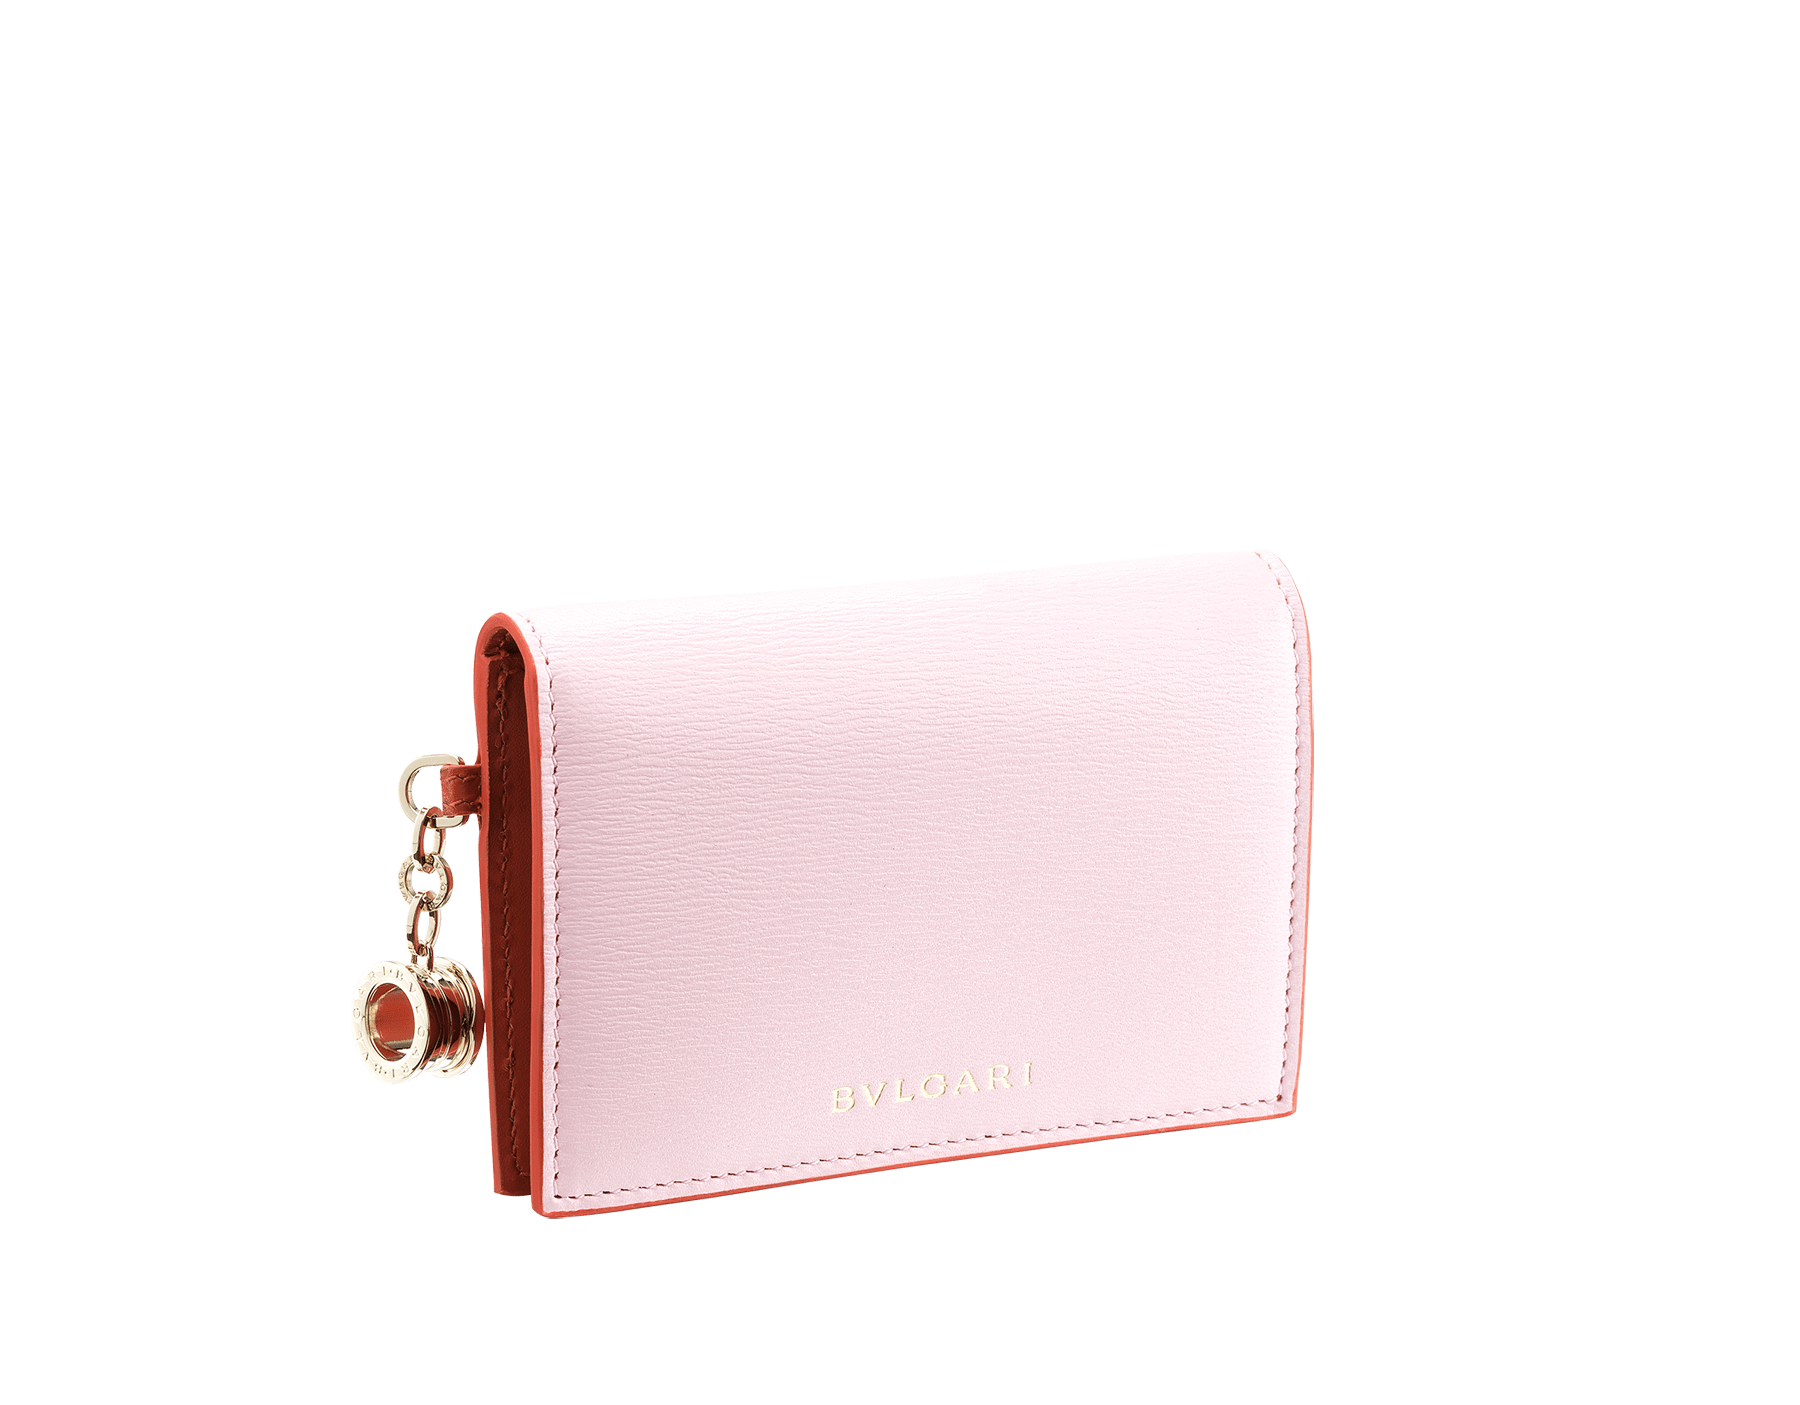 B.zero1 folded credit card holder in rosa di francia and imperial topaz goatskin. Iconic B.zero1 charm in light gold plated brass. 289069 image 1